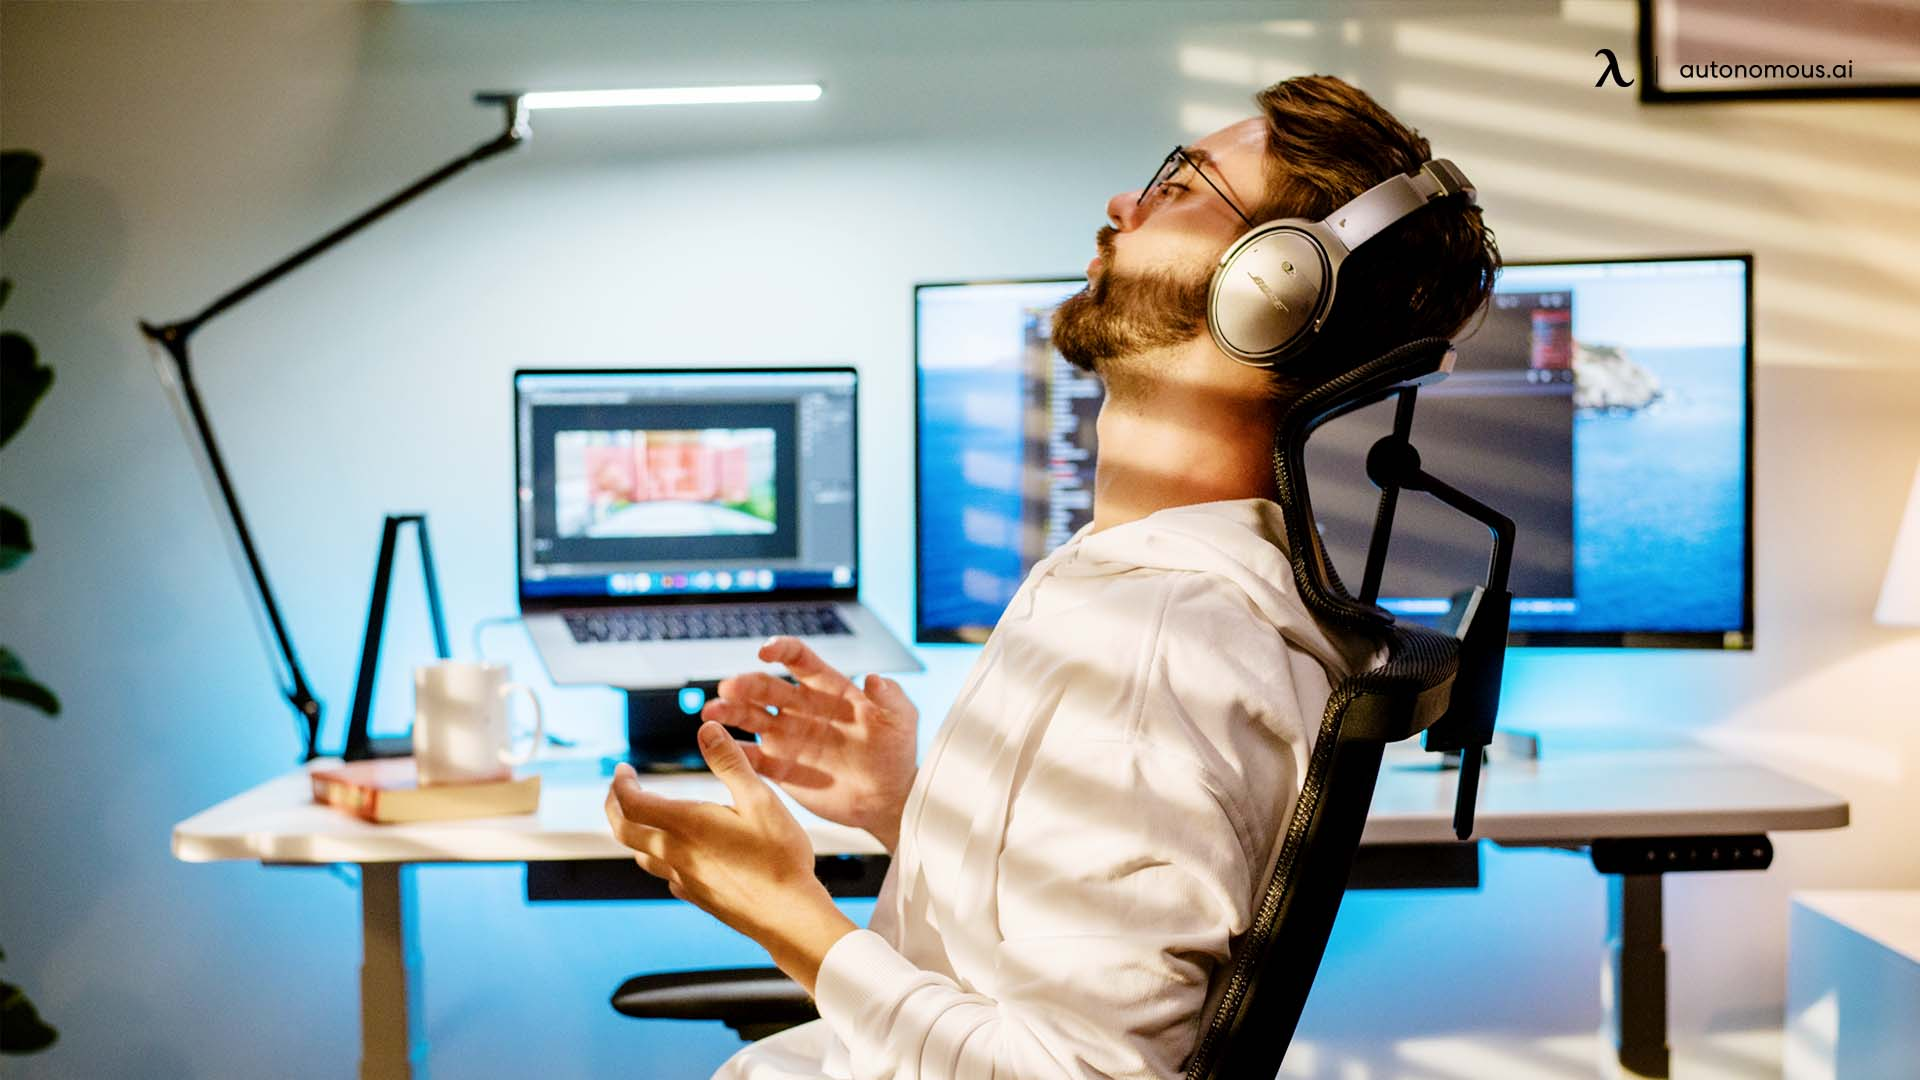 But how can music increase your productivity